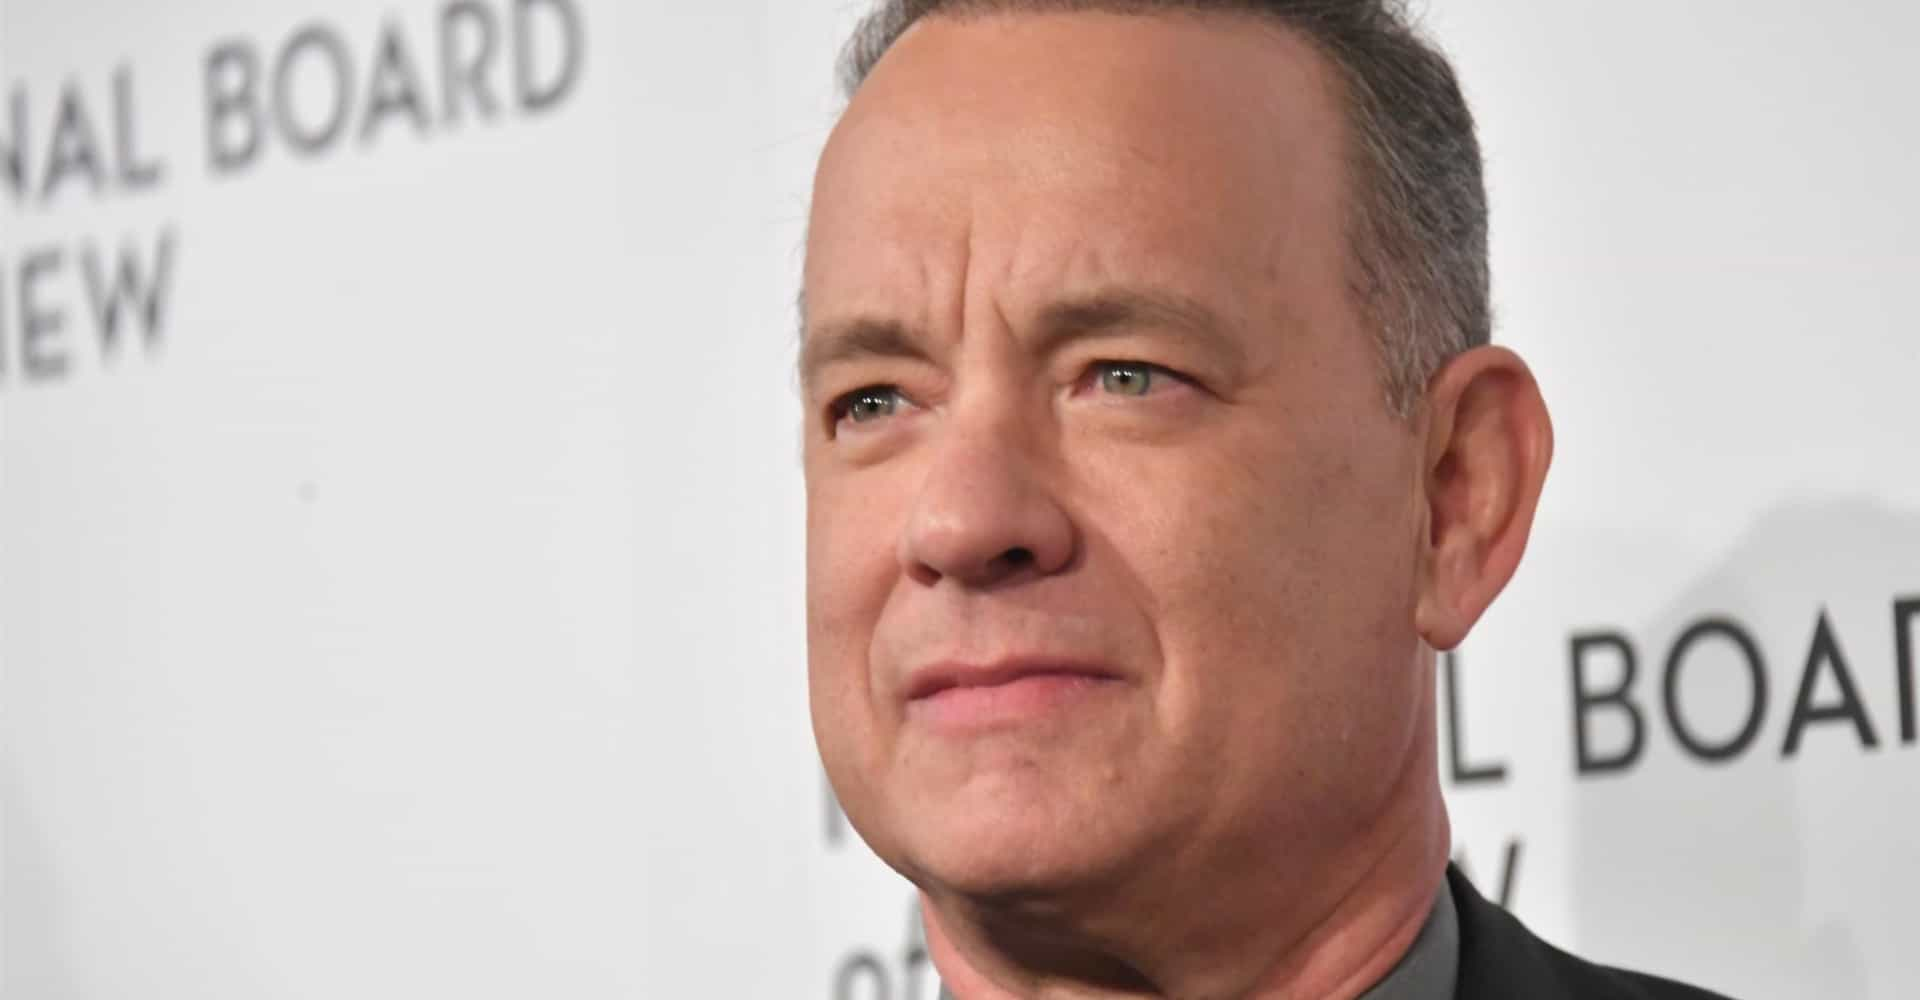 Incidente mortale sul set del nuovo film di Tom Hanks